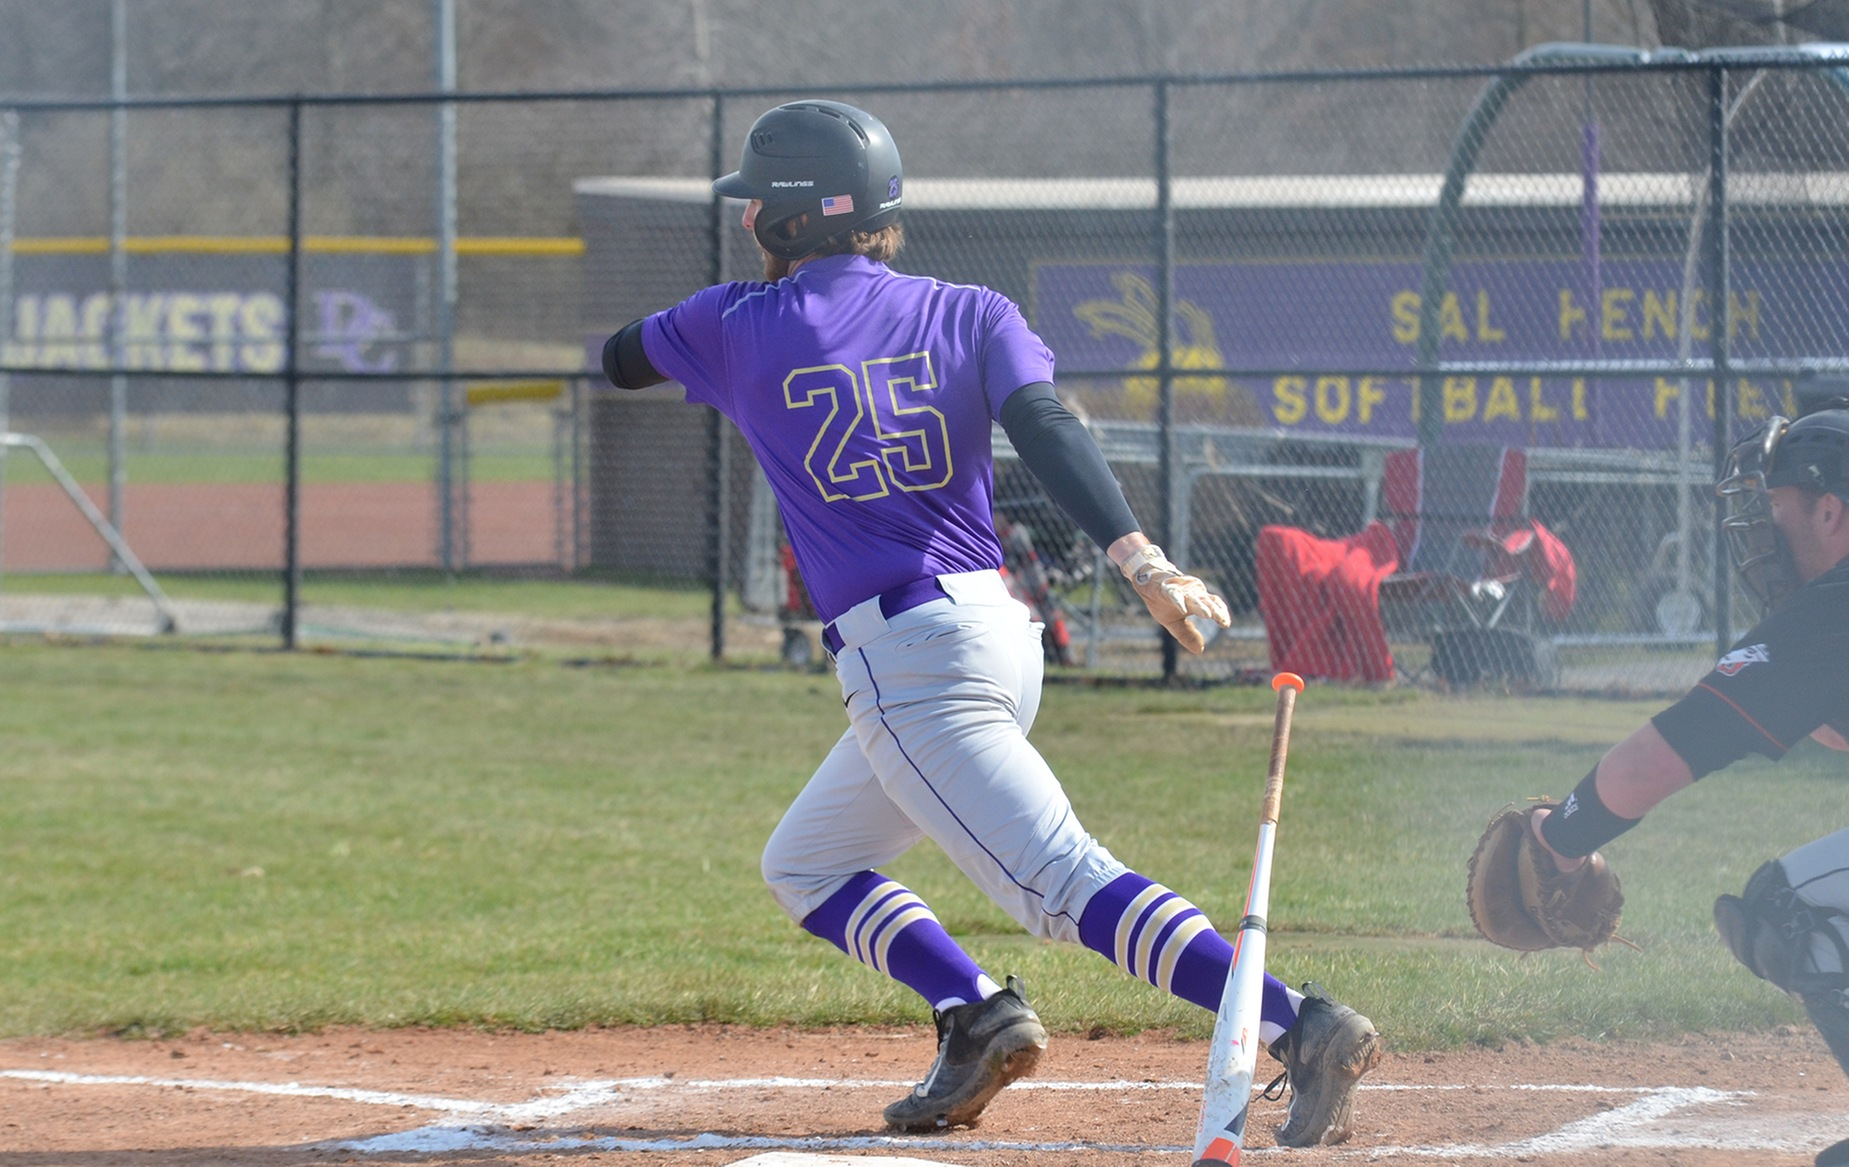 Baseball Drops Pair of Contests to St. John's (Minn.)